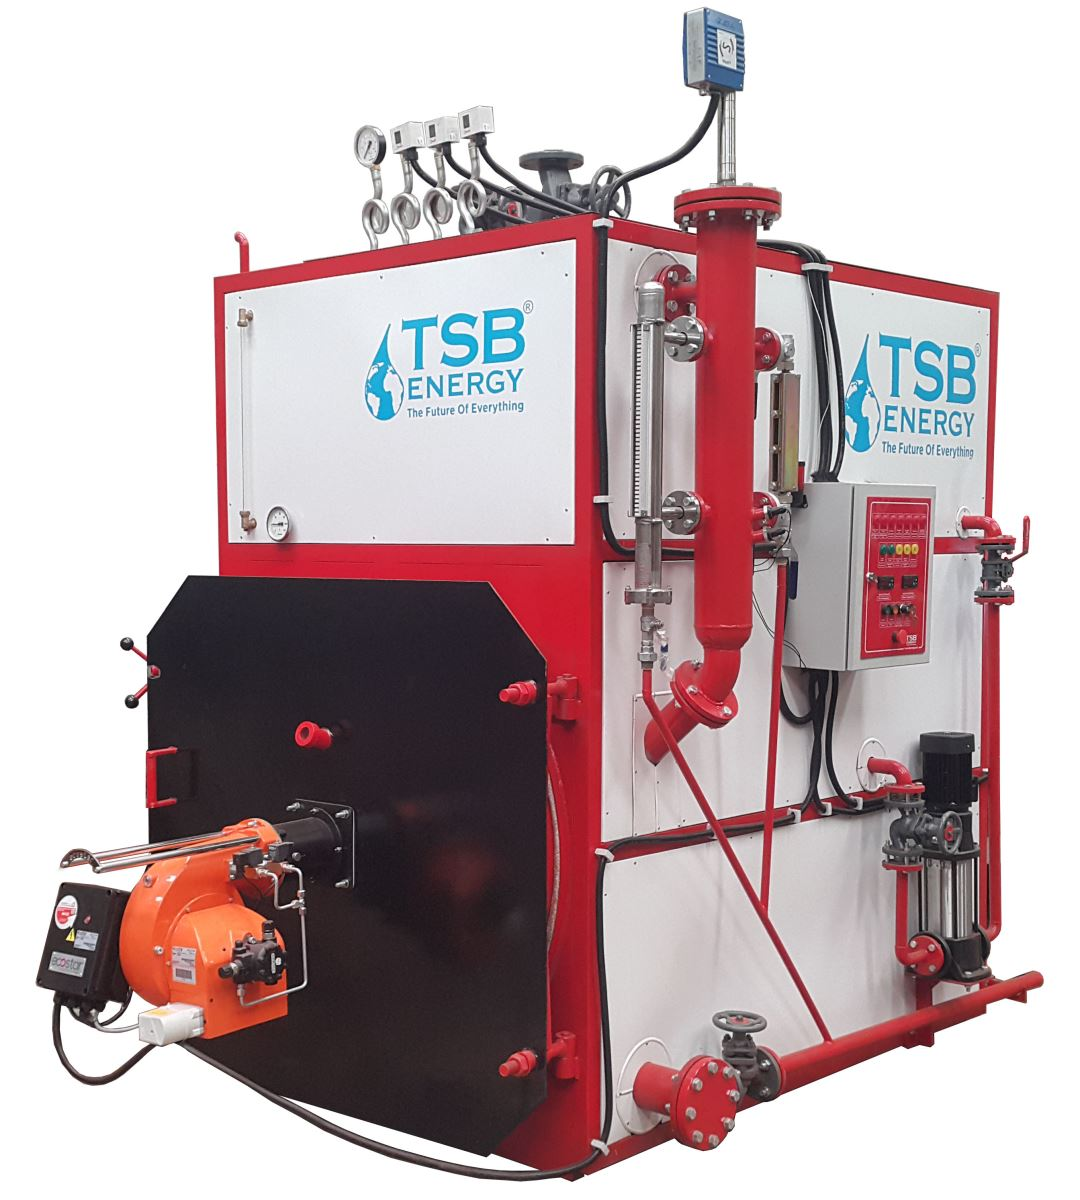 Steam Generator, Steam Boiler, Steam Producer, TSB ENERGY, Universal Steam Generator